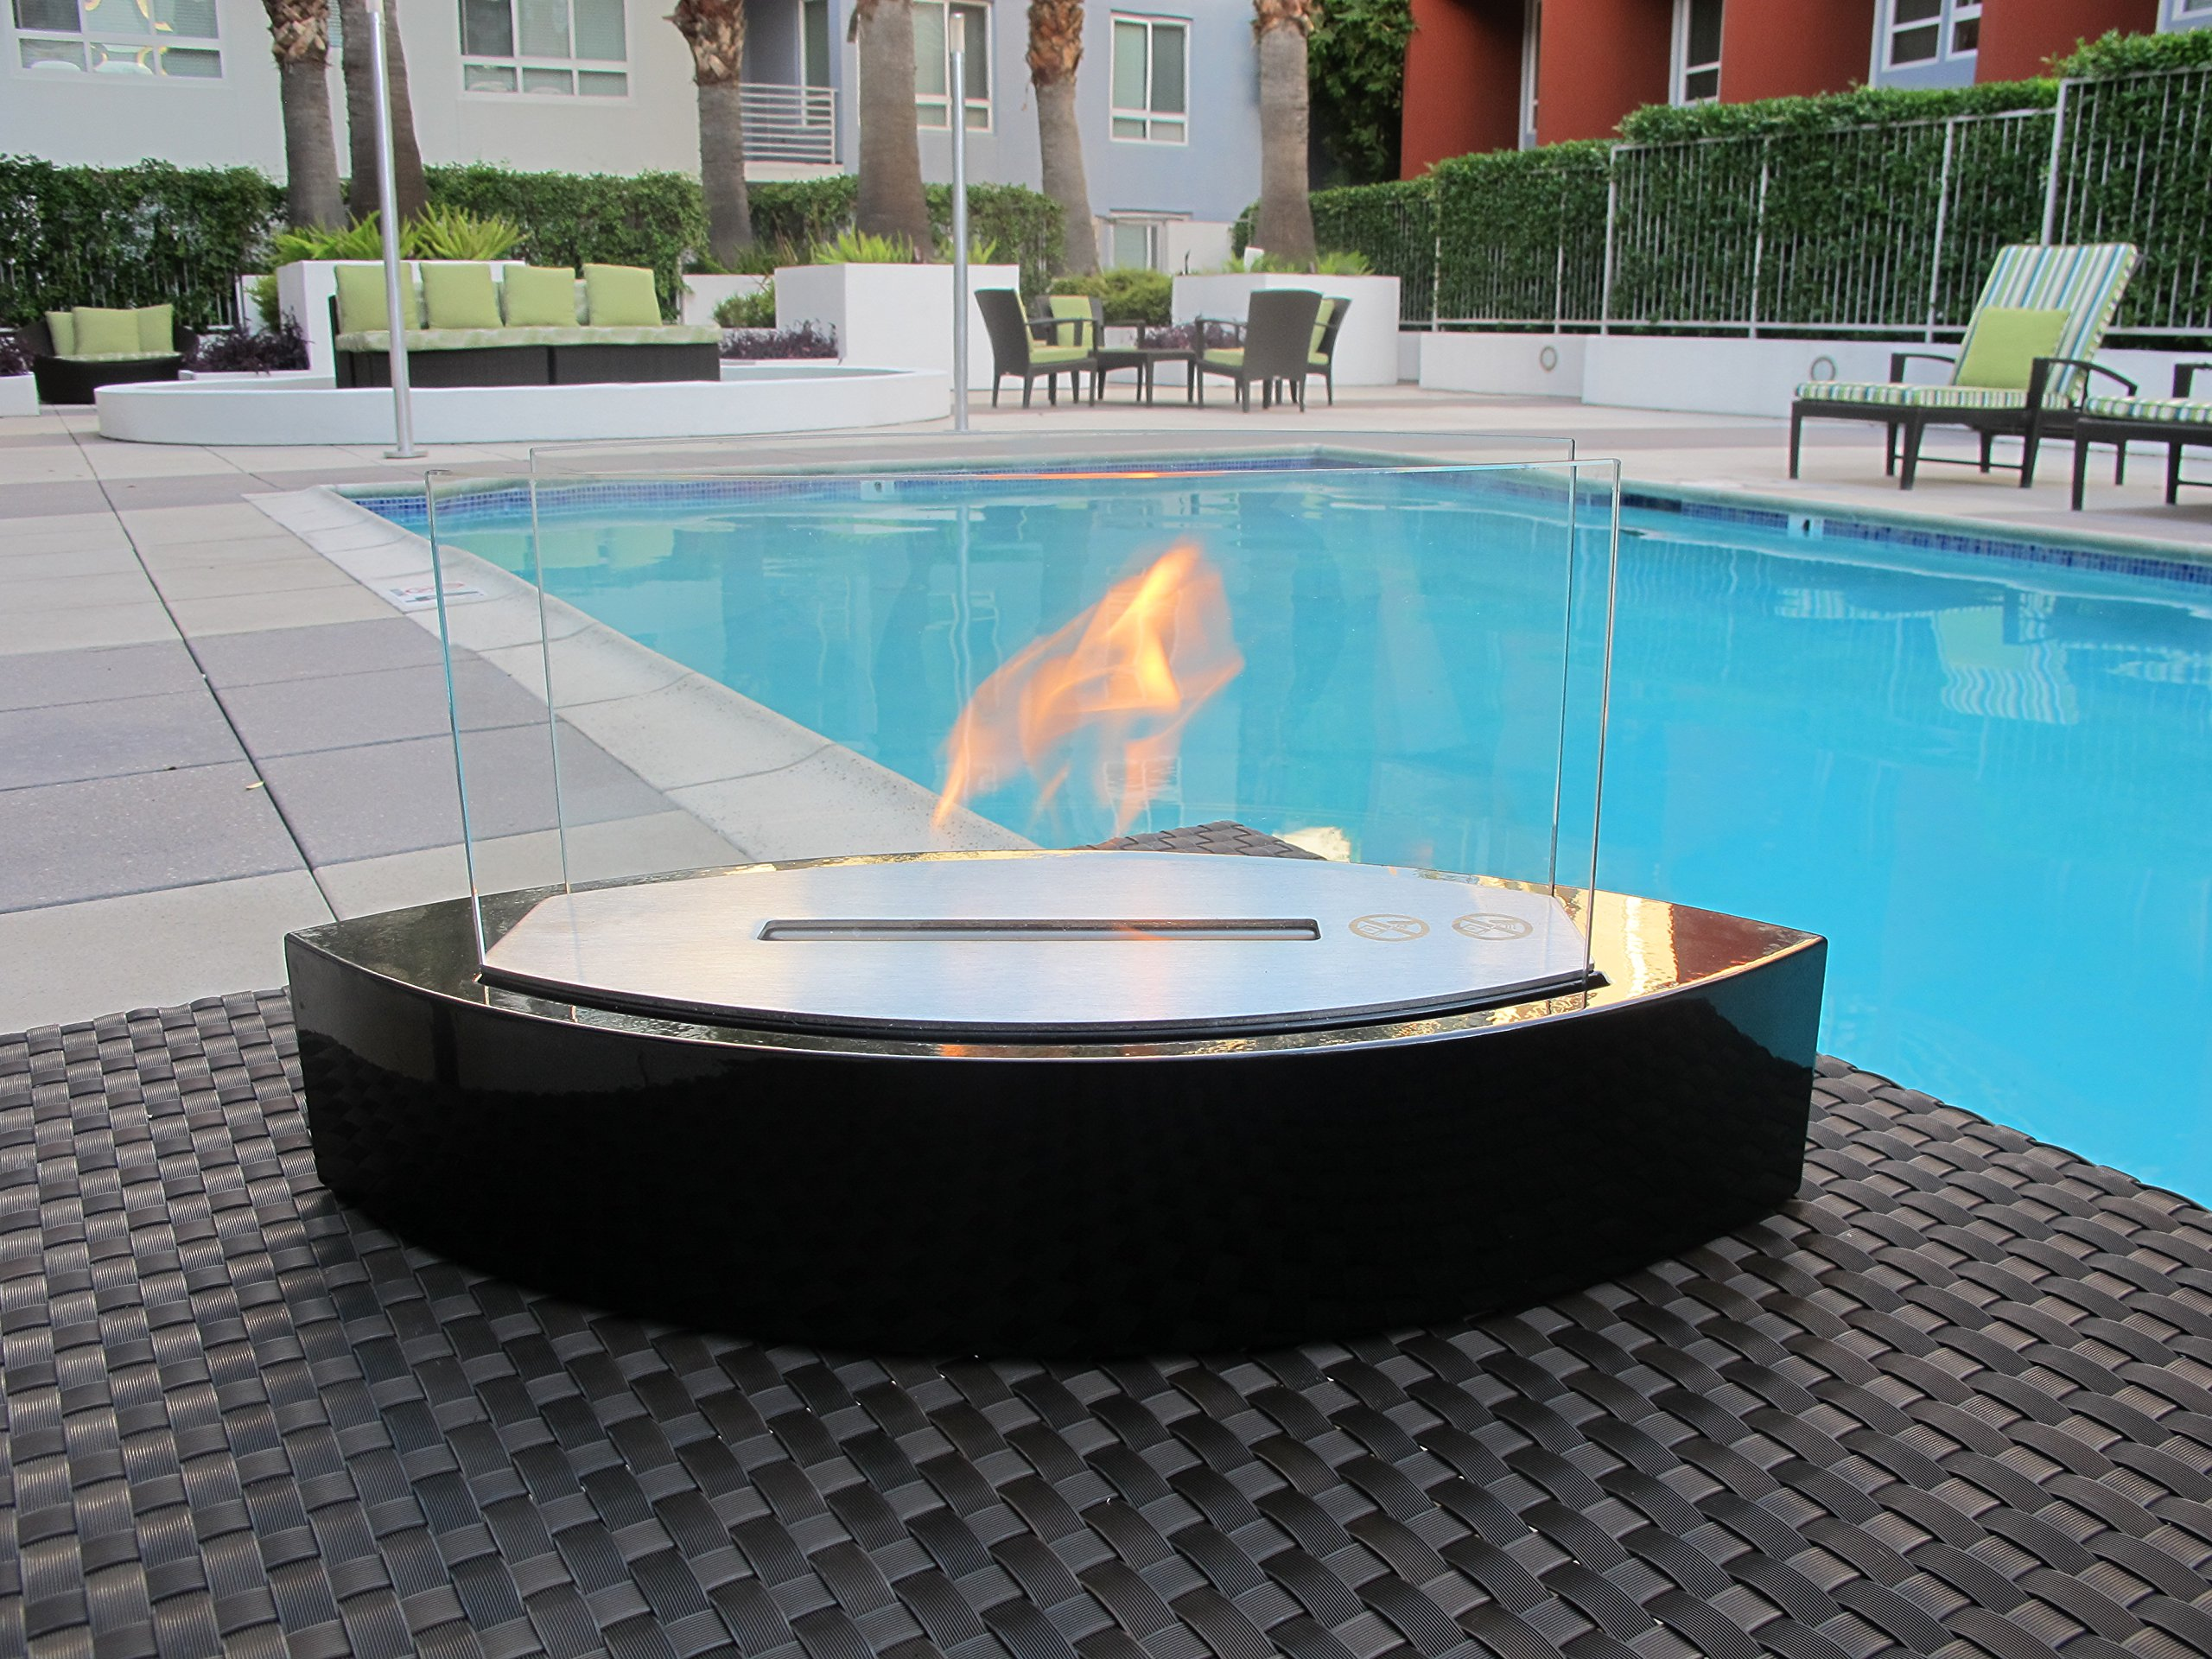 Chic Fireplaces- Luxury Concord Black TableTop Ventless Bio Ethanol Fireplace Indoor/Outdoor, Portable, Non-Toxic & Eco-Friendly by Chic Fireplaces